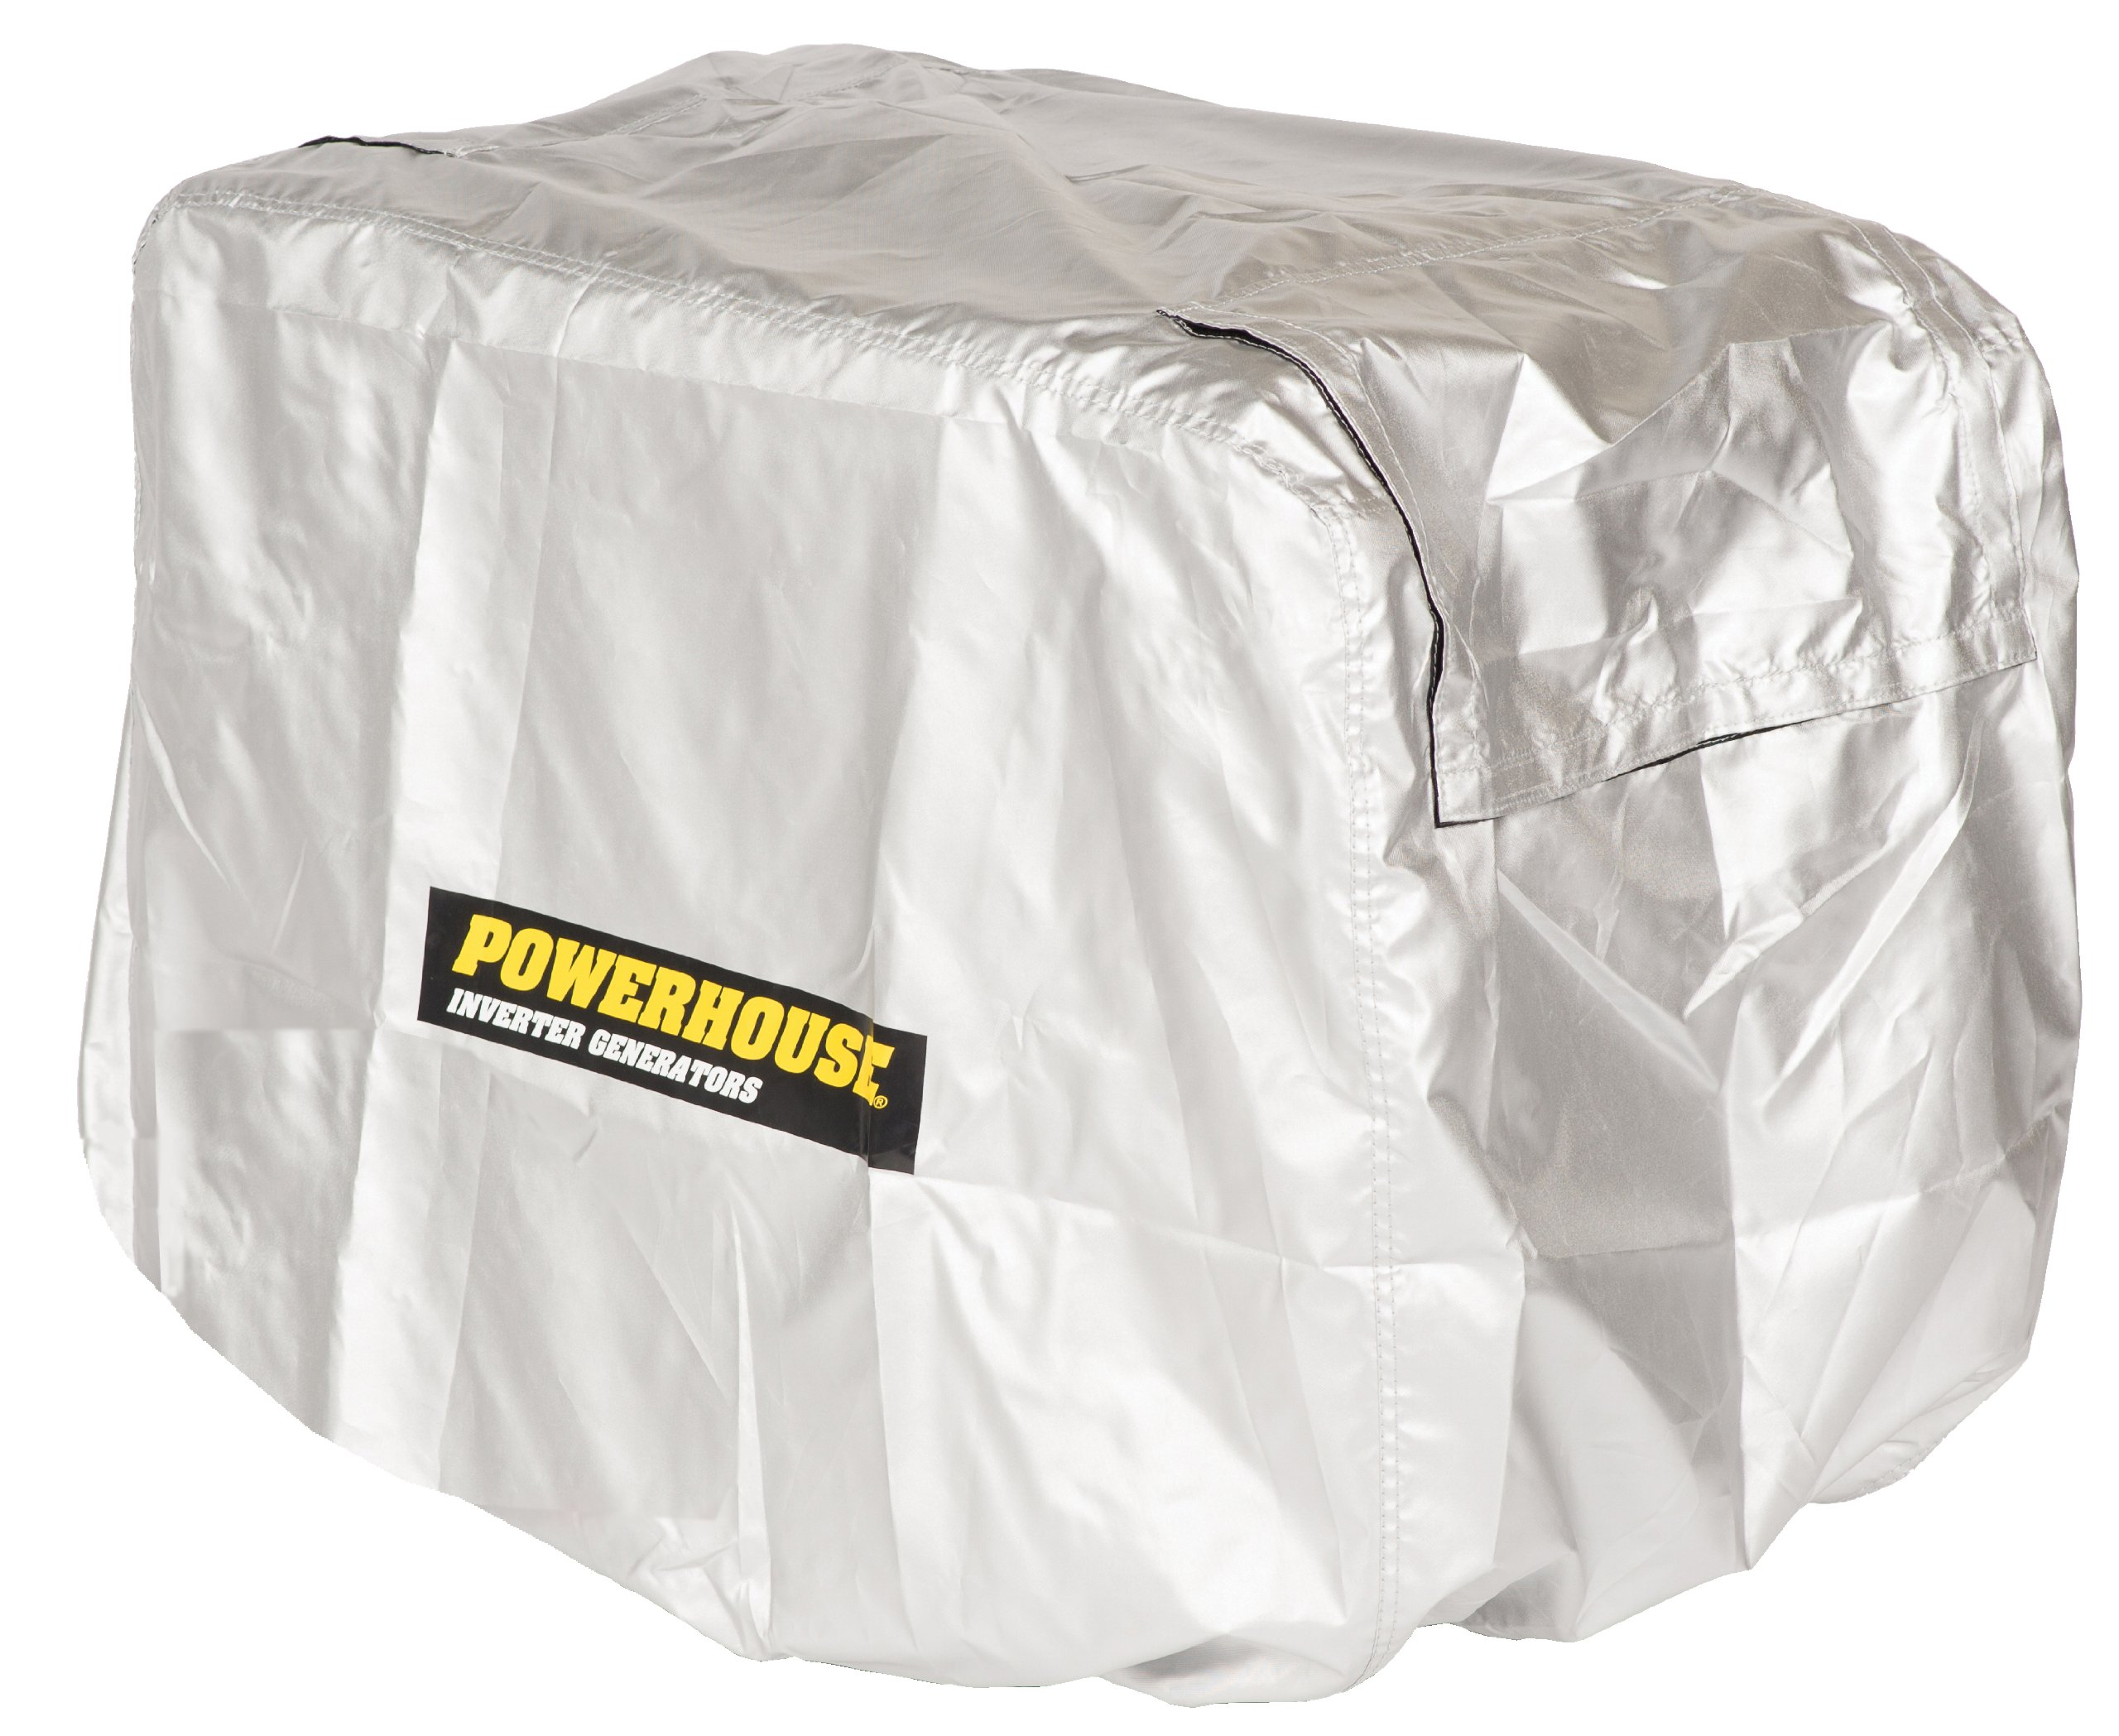 Powerhouse 80505 Generator Cover for PH6500Ri, XX-Large by Powerhouse